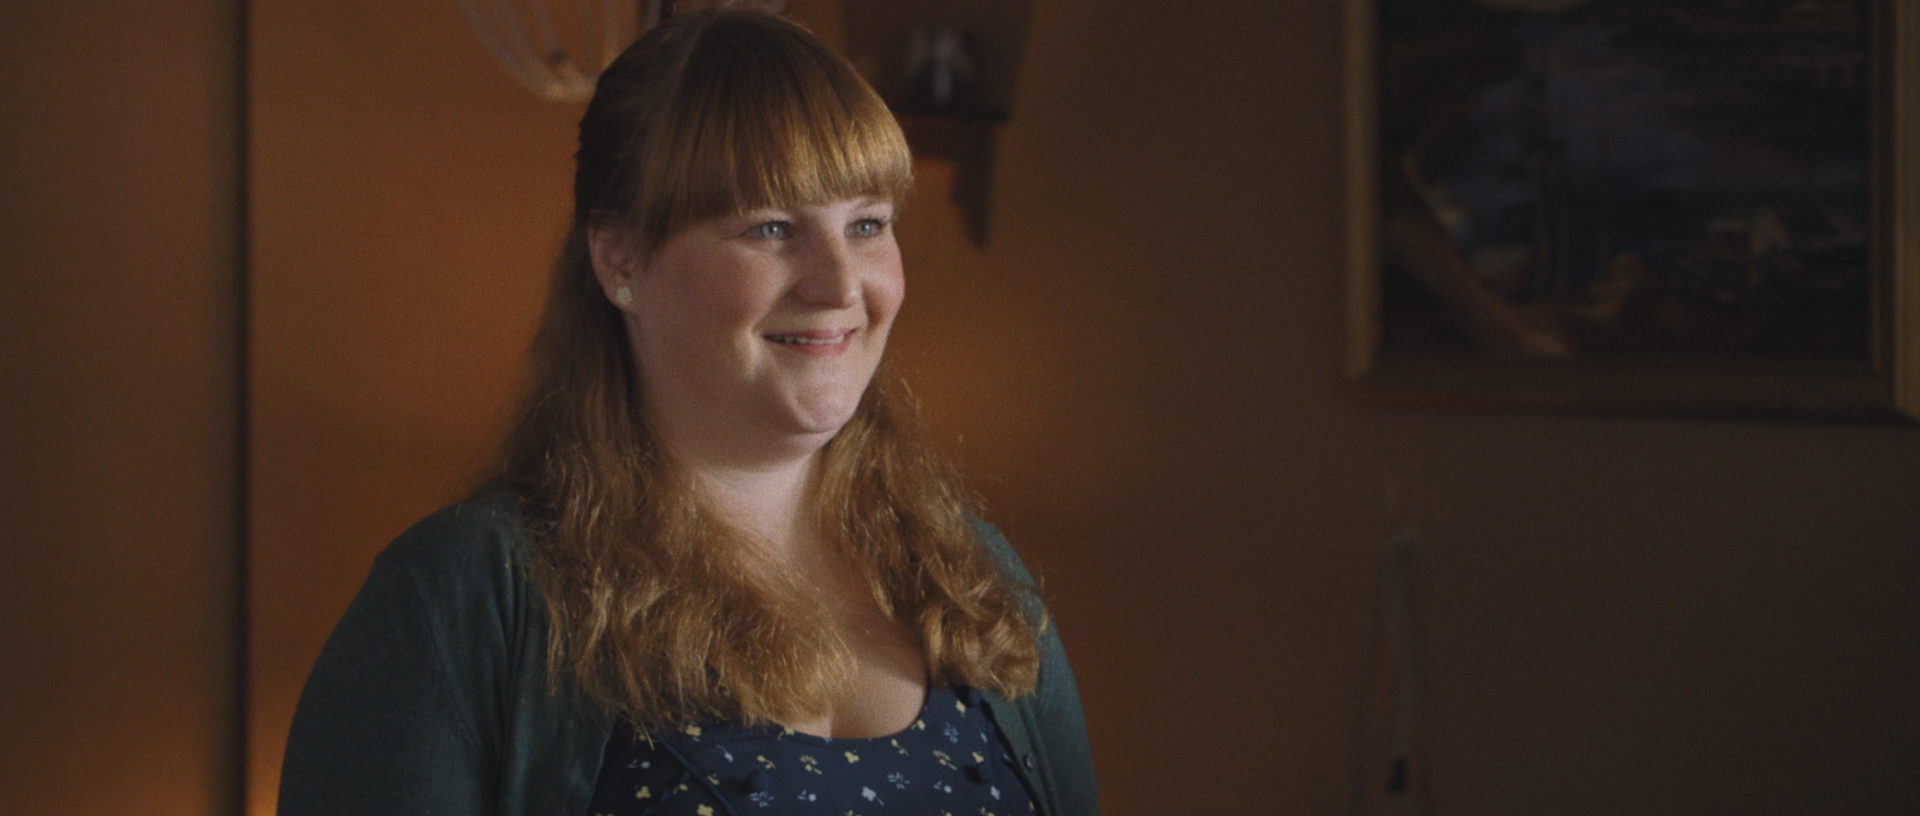 Amy Miller as the Motel Clerk. Image courtesy of Hunter Way Pictures.